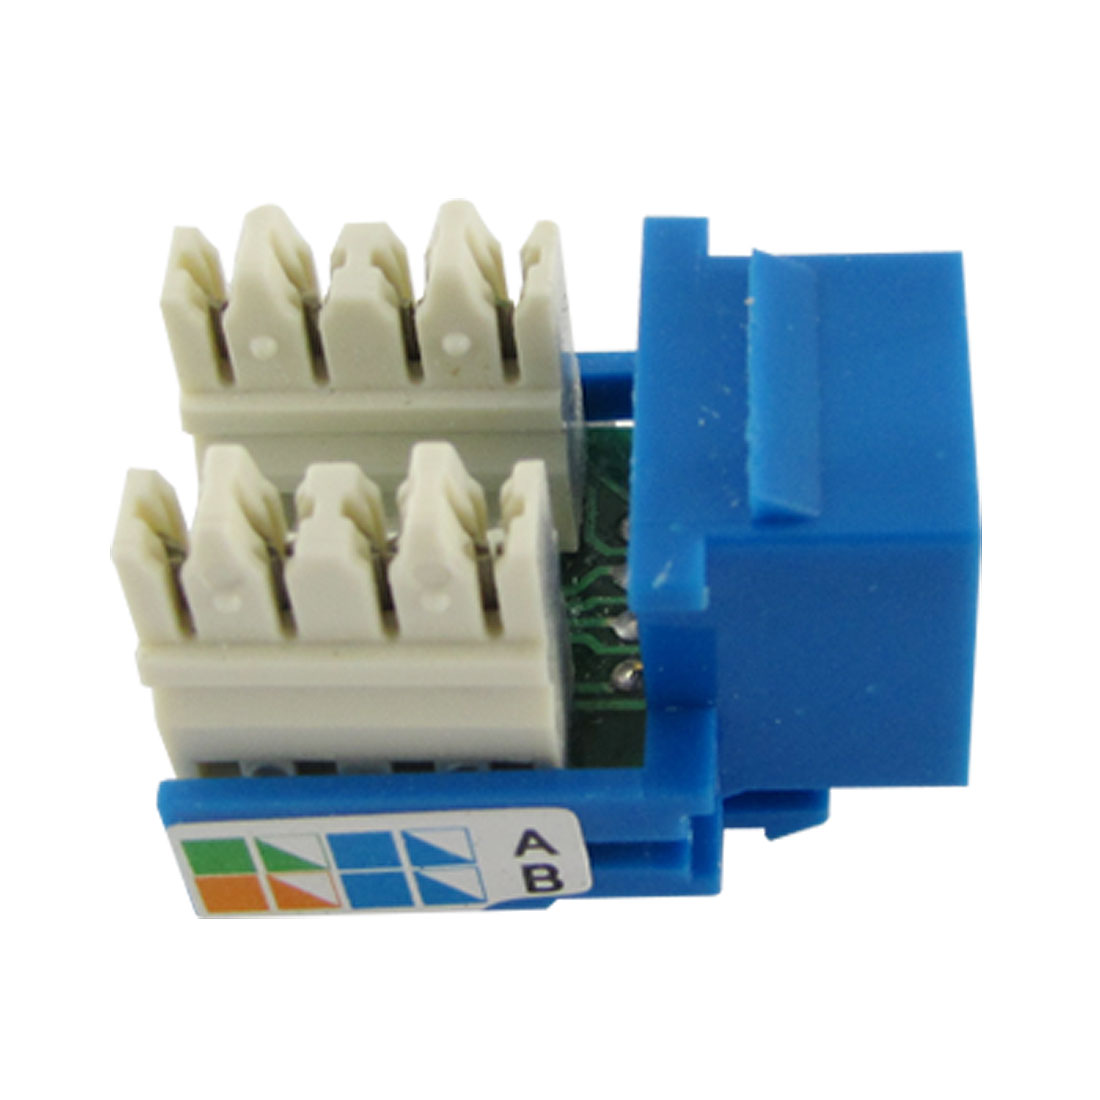 Plastic Cat5e RJ45 Connector Network Jack Module Blue White 3 x 2.5 x 2cm